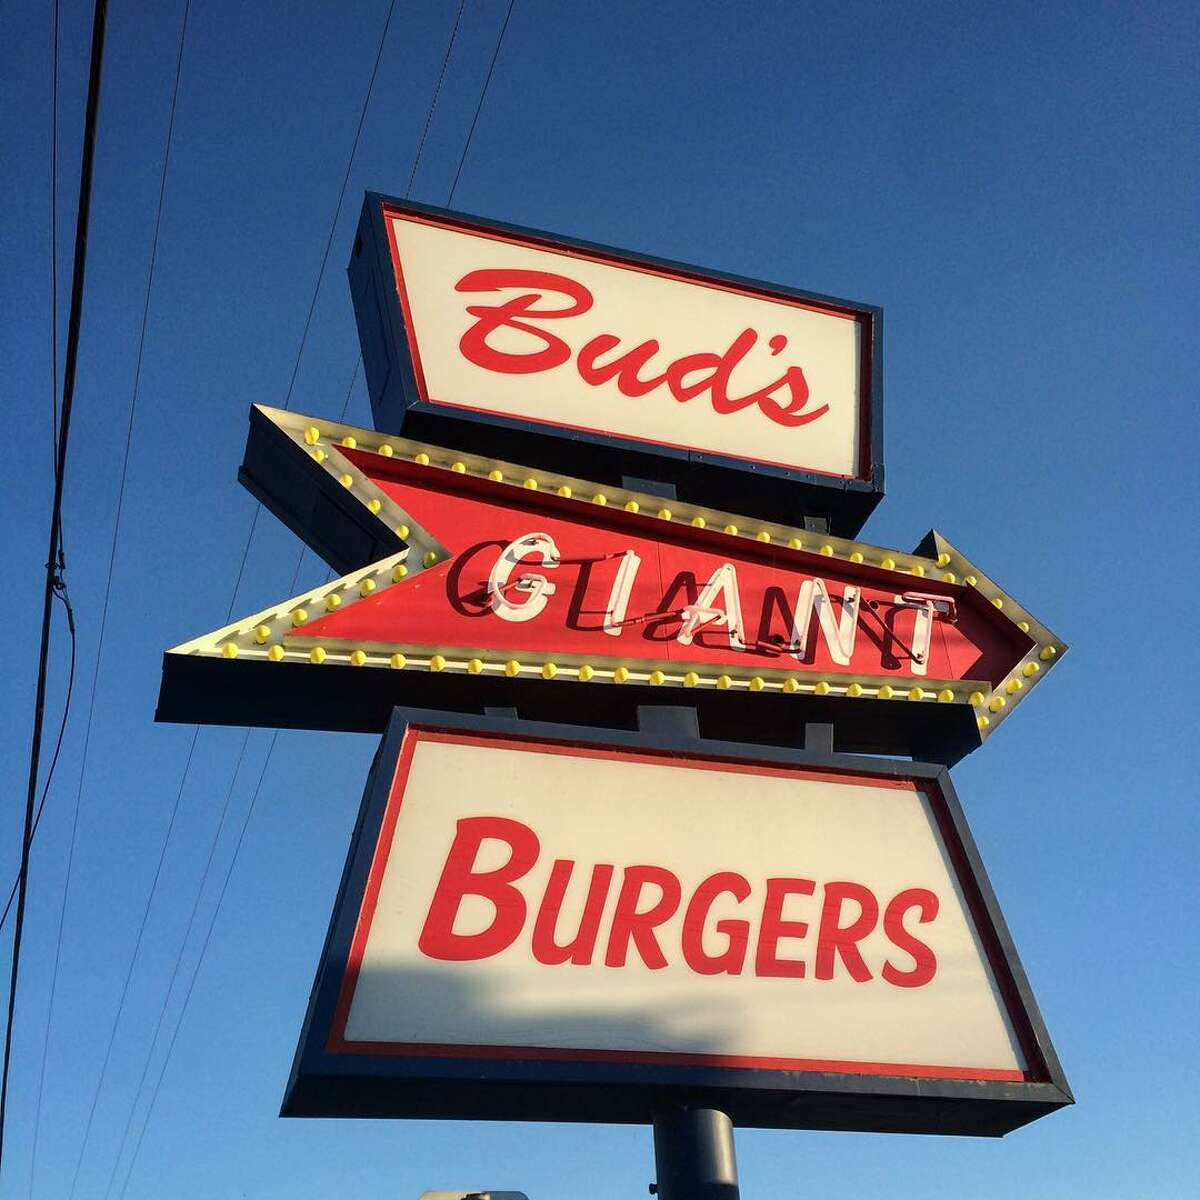 Bud's Burgers, Vallejo: Classic, greasy hamburger stand burgers and excellent, fresh fries. If you don't want burgers, Pho #1 shares a parking lot and the Dos Hermanos taco truck is across the street 3849 Sonoma Blvd., (707) 642-3252.